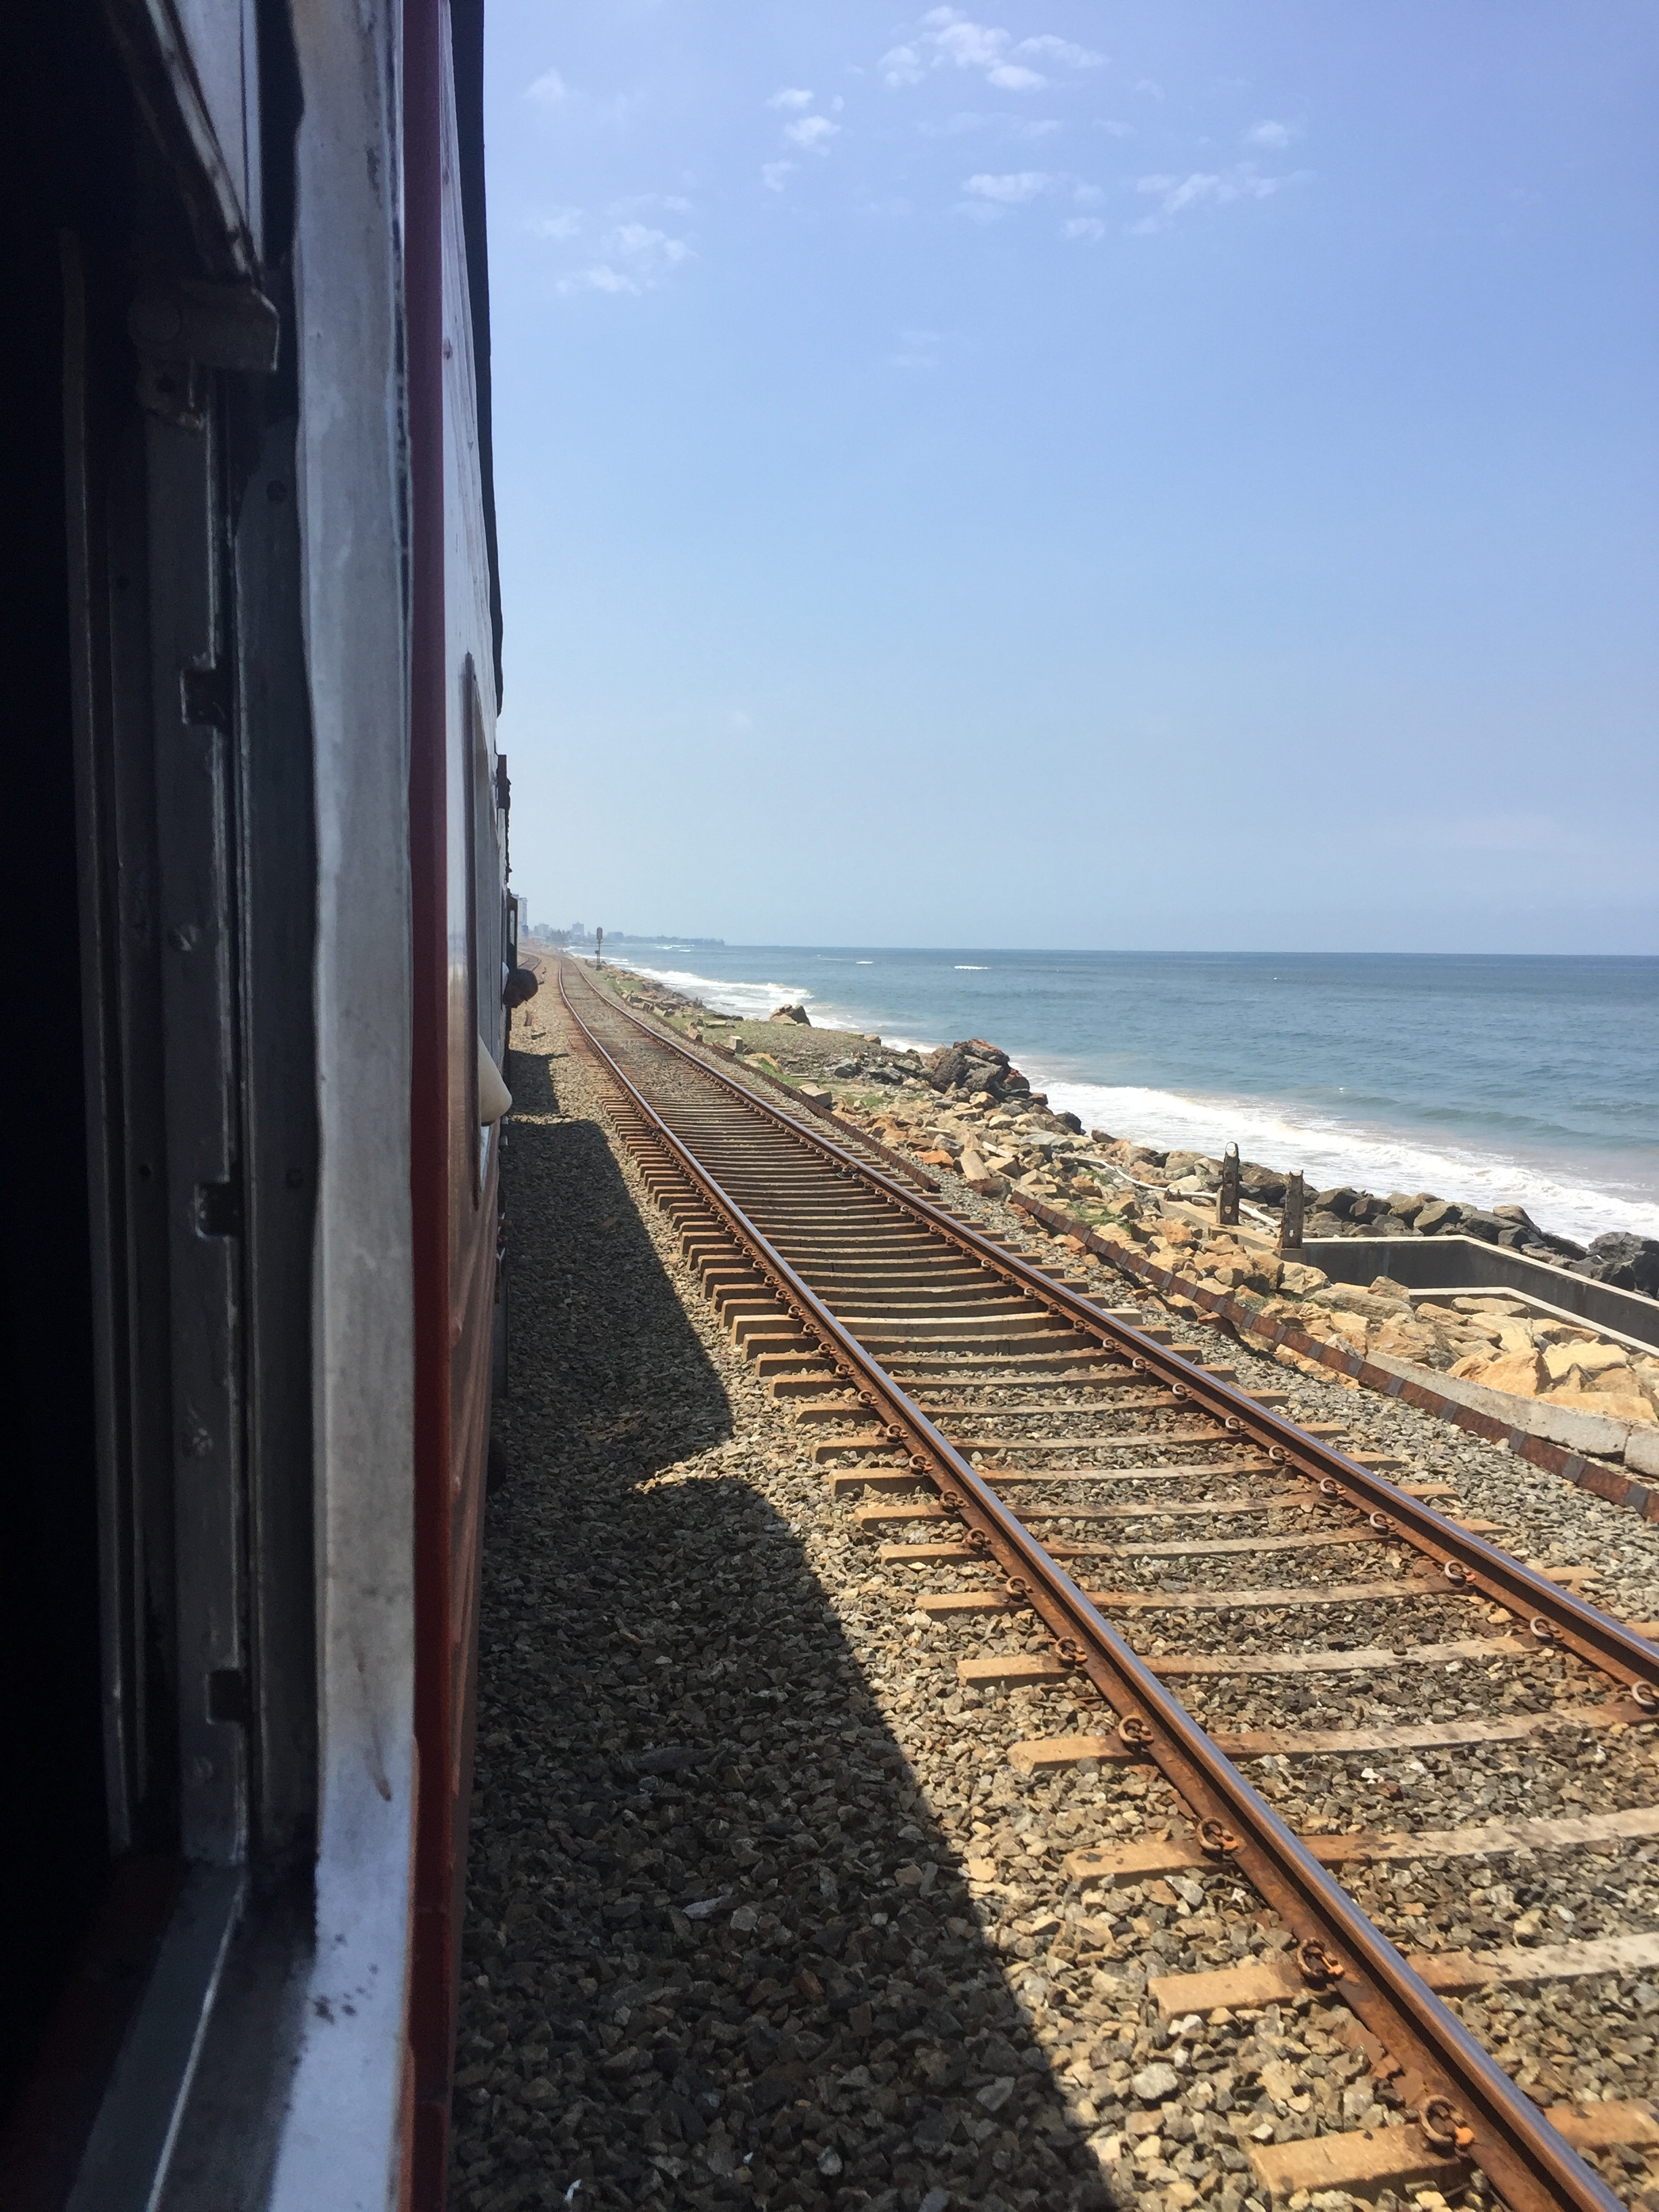 Catching the coastal train from Colombo down to Hikkaduwa.